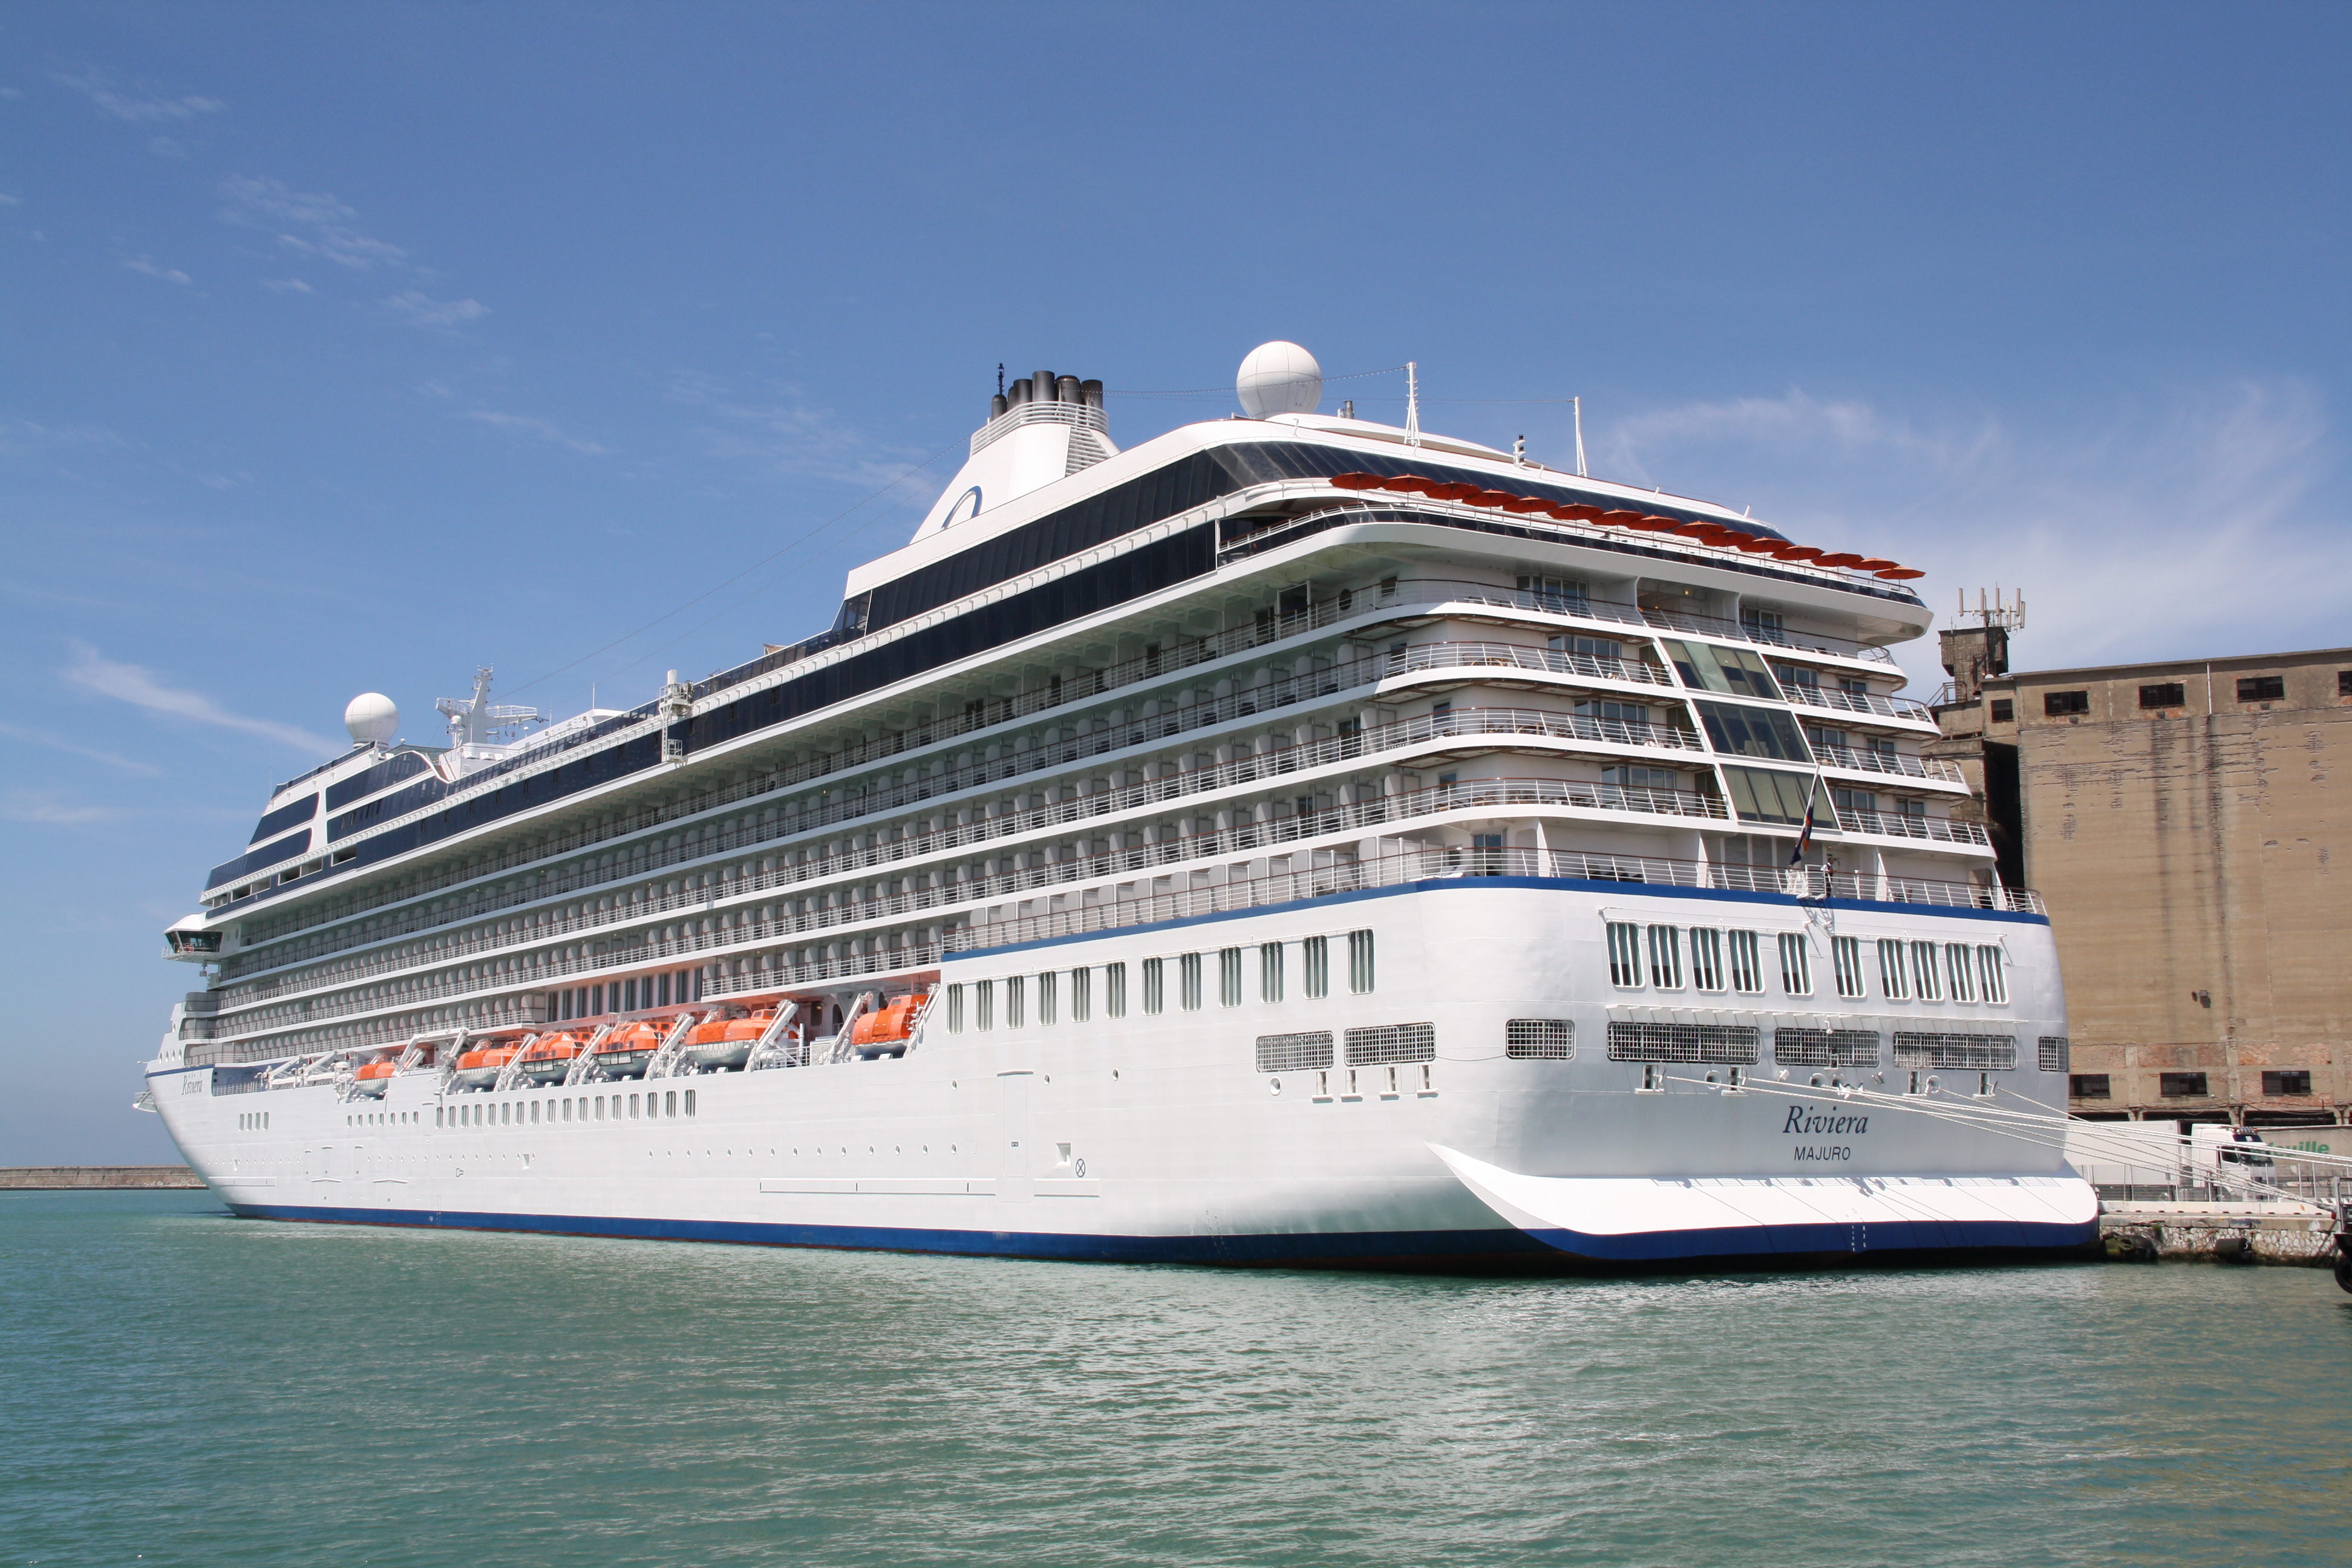 The cruises recorded about 120,000 passengers, according to the Singapore Tourism Board (STB), and run at lower capacity, with stringent health protocols.